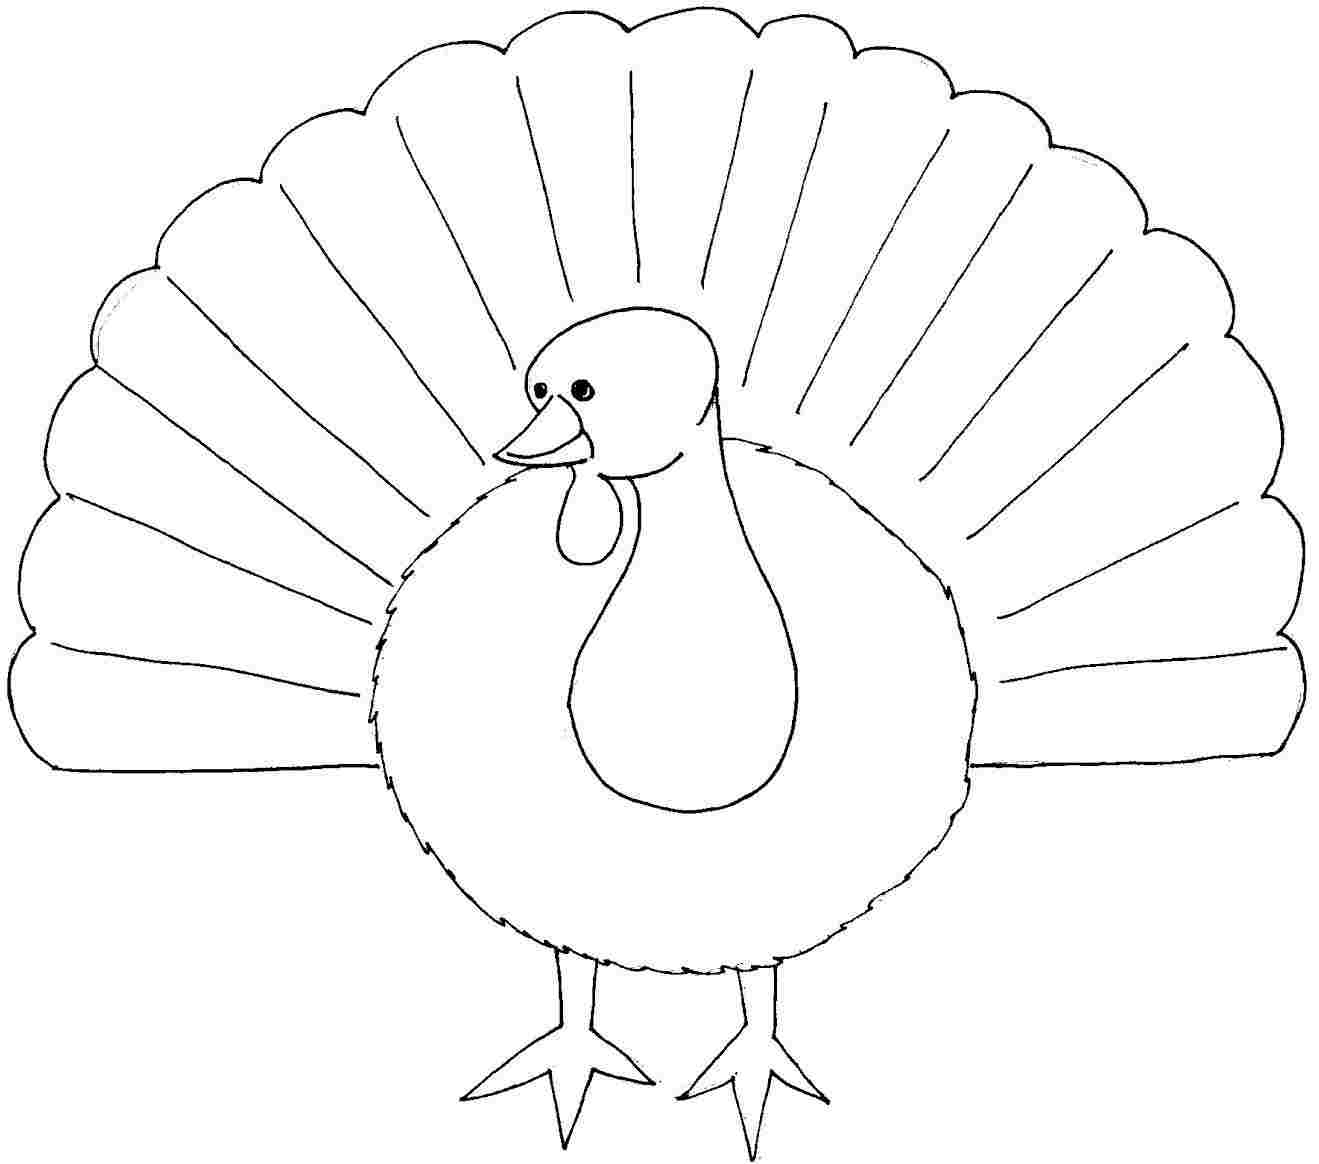 Thanksgiving Turkey Coloring Pages For Kids At Getdrawings Com